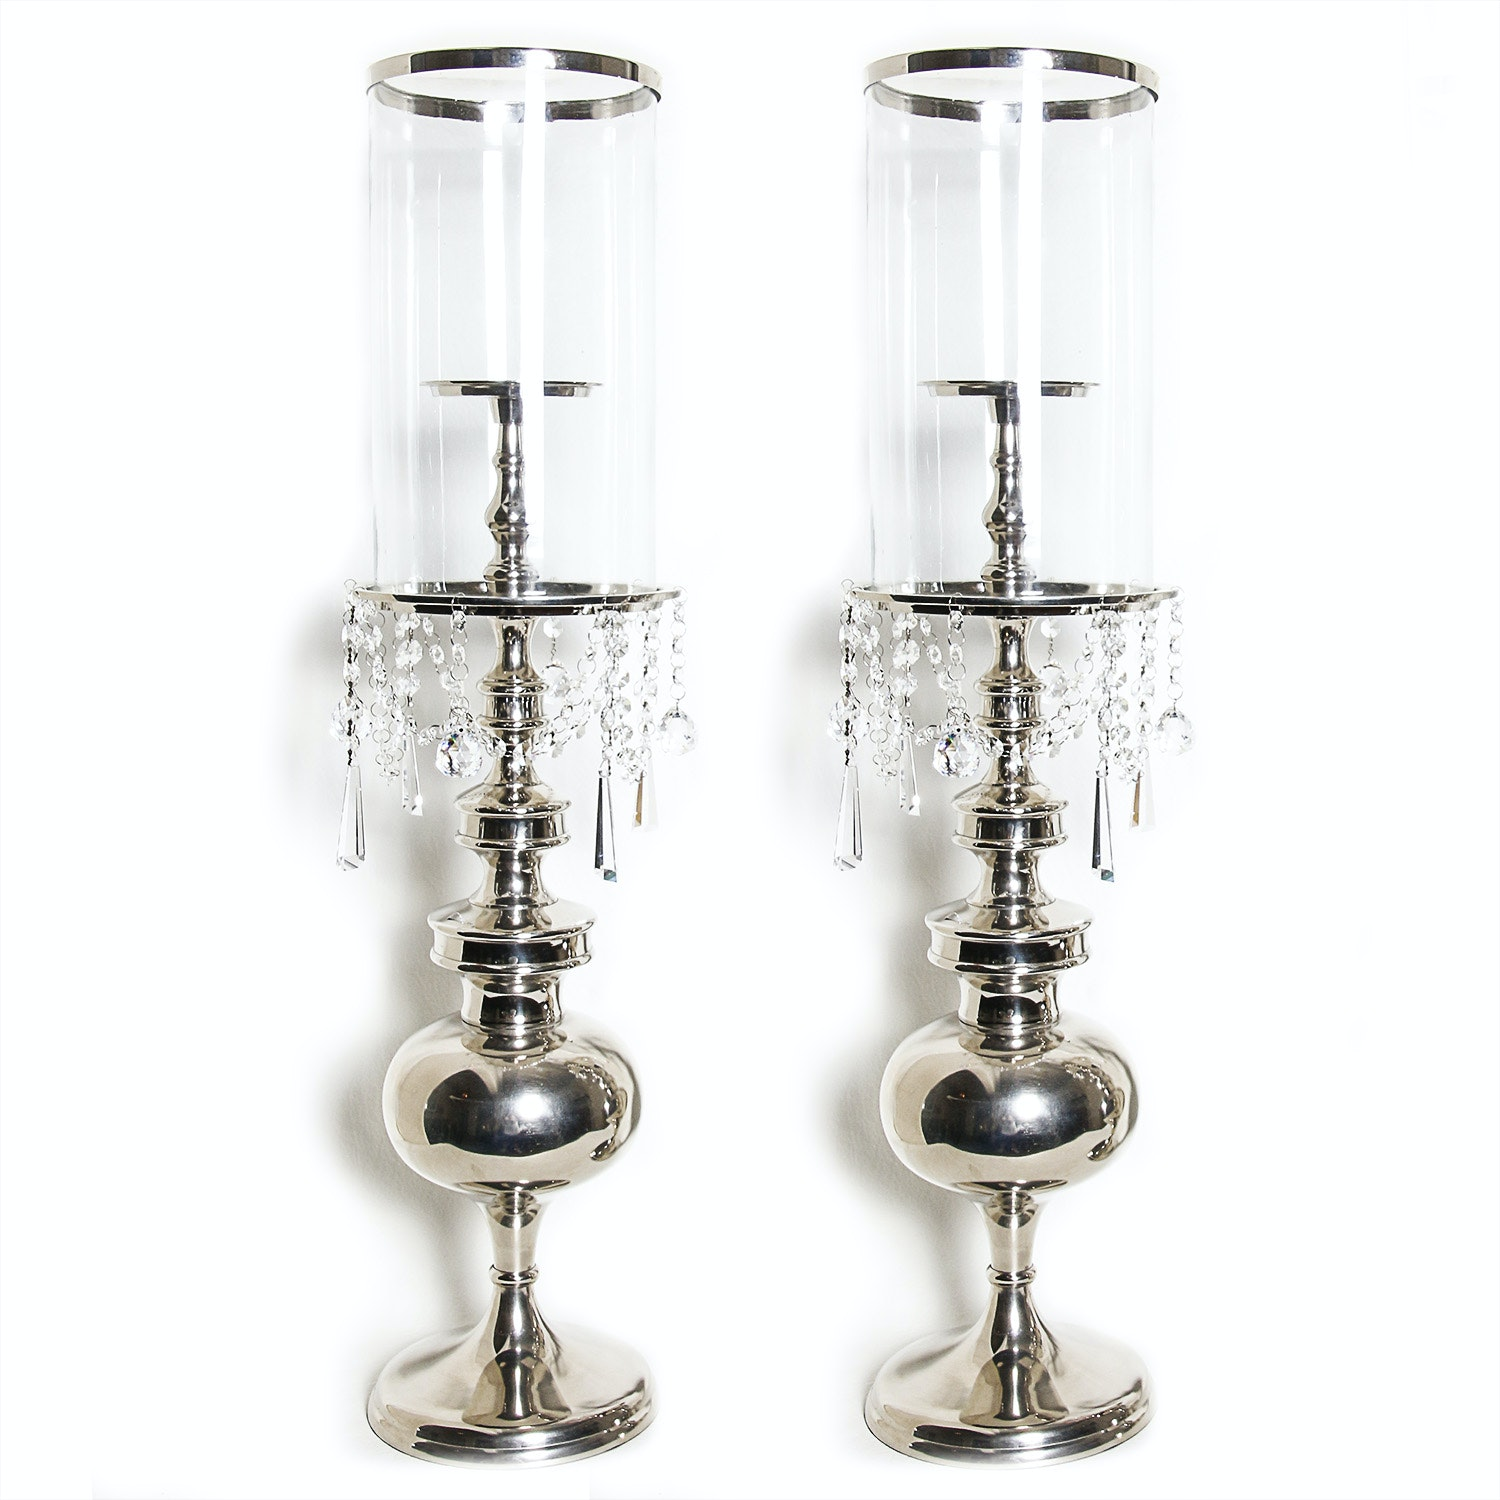 Pair of Solka Glass Hurricanes